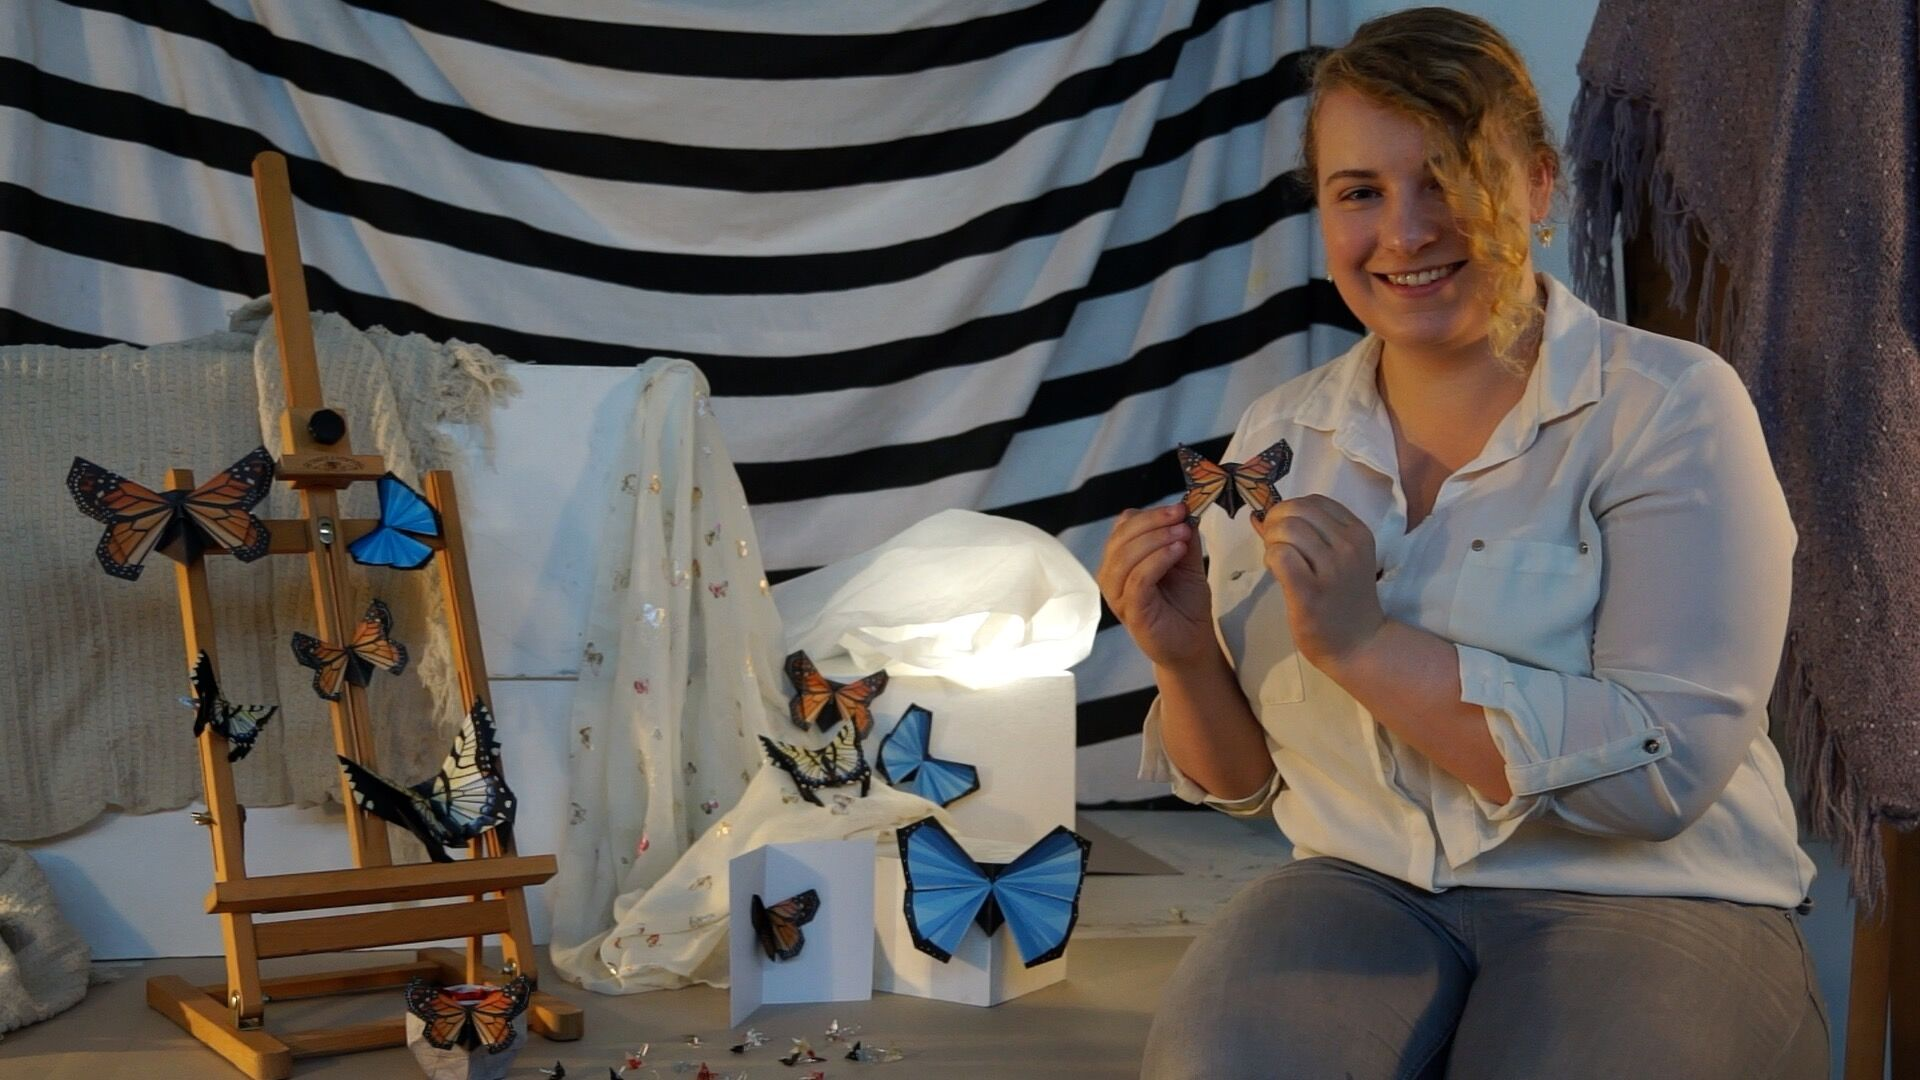 Student Cari Watterton with her butterfly craft kits which she hopes will raise money for conservation.